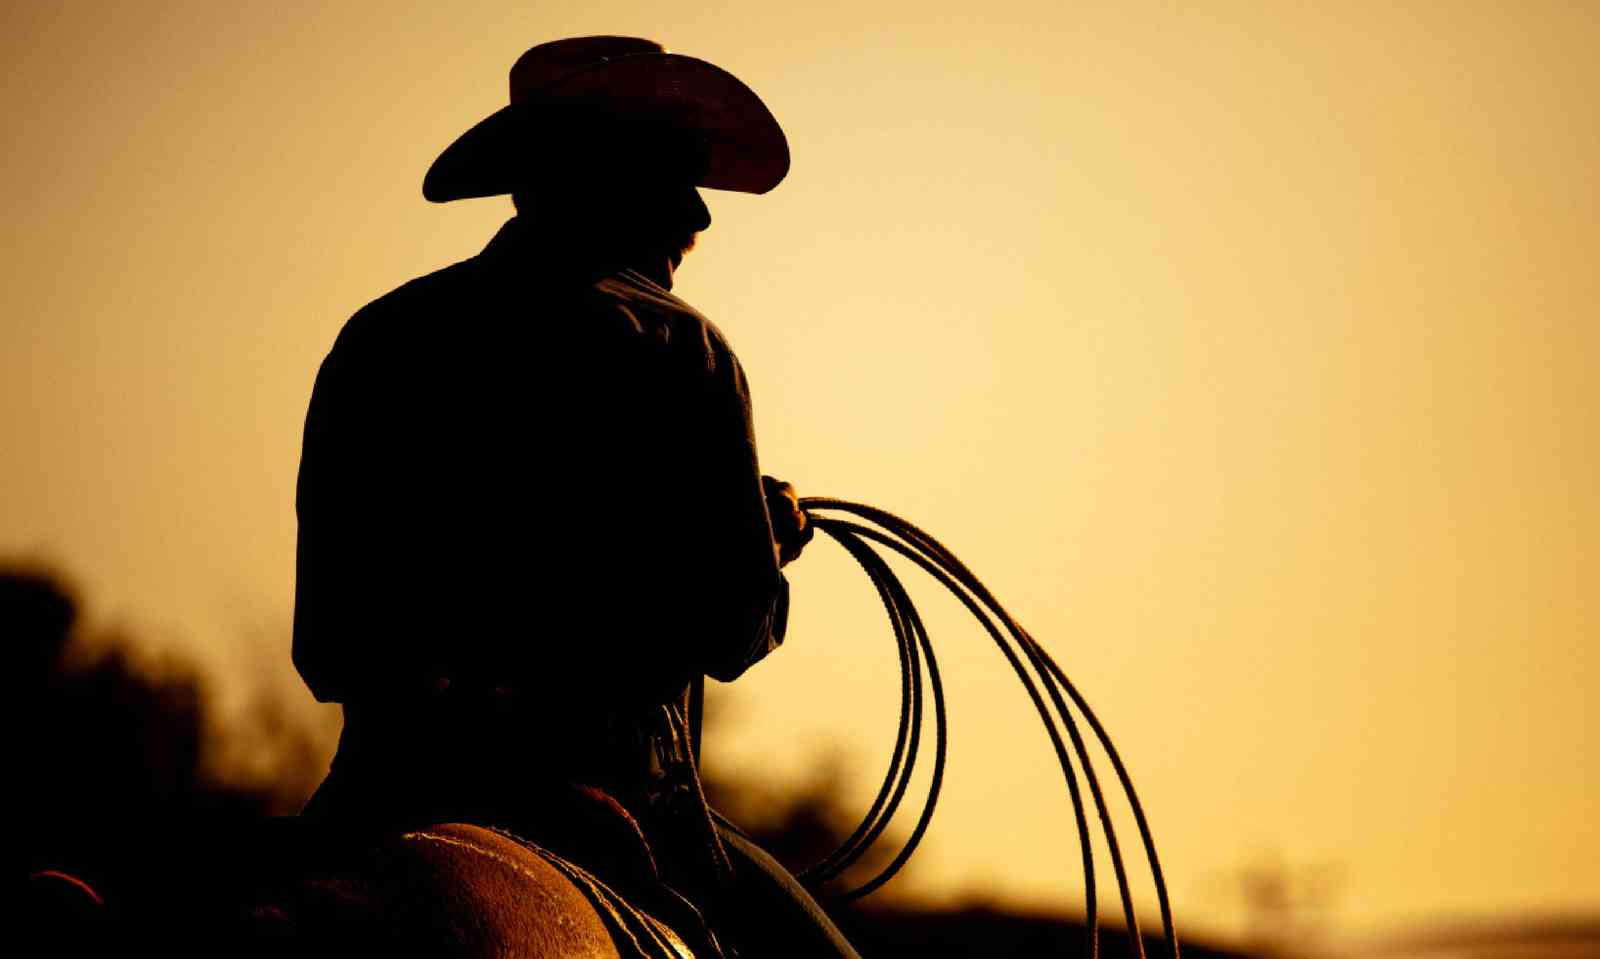 Cowboy with lasso silhouette (Shutterstock)